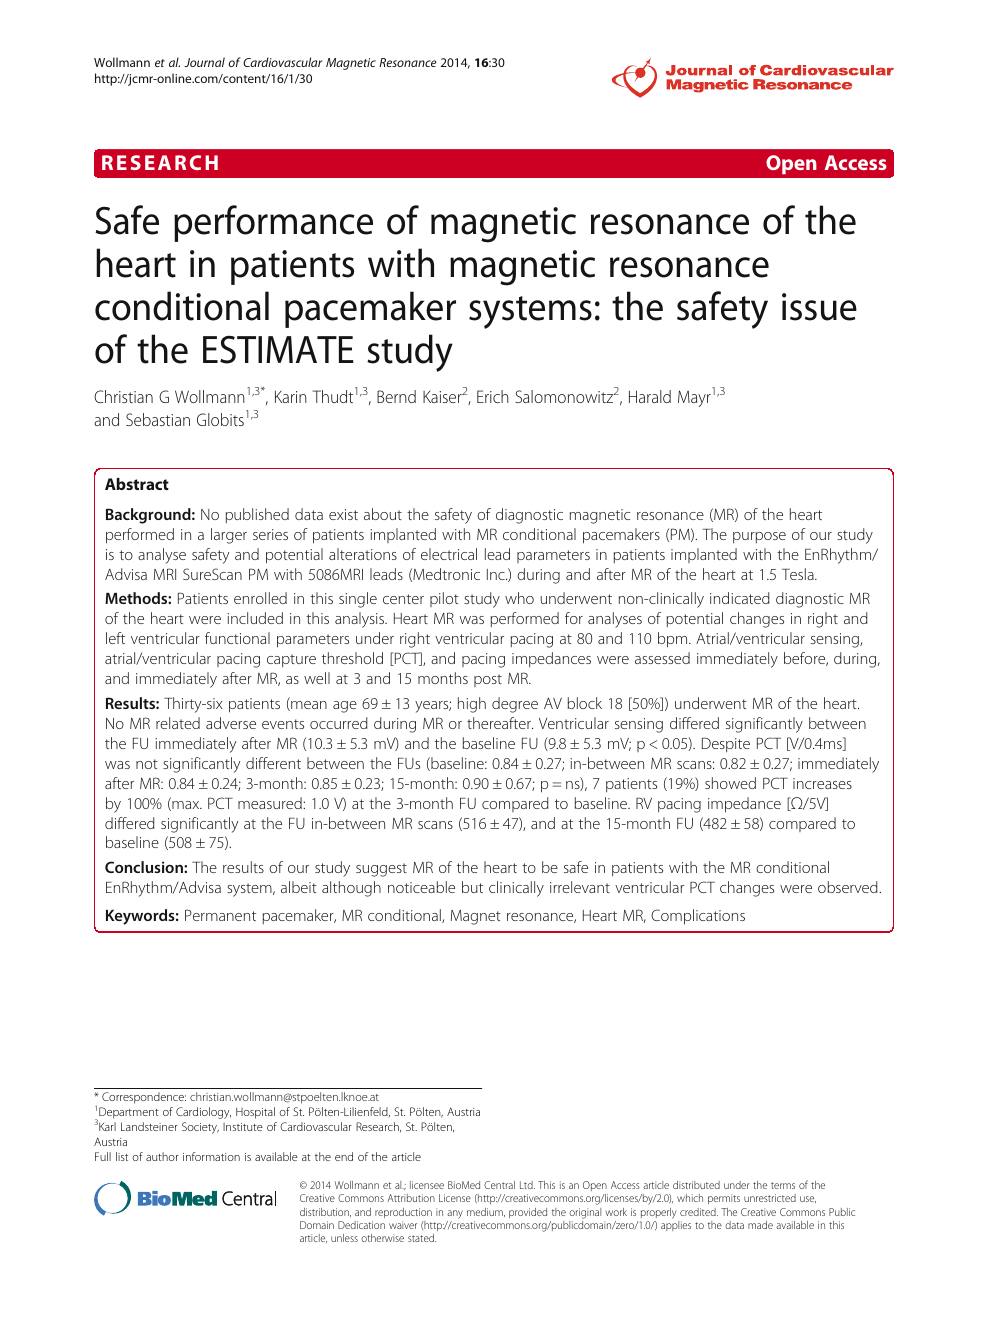 Safe performance of magnetic resonance of the heart in